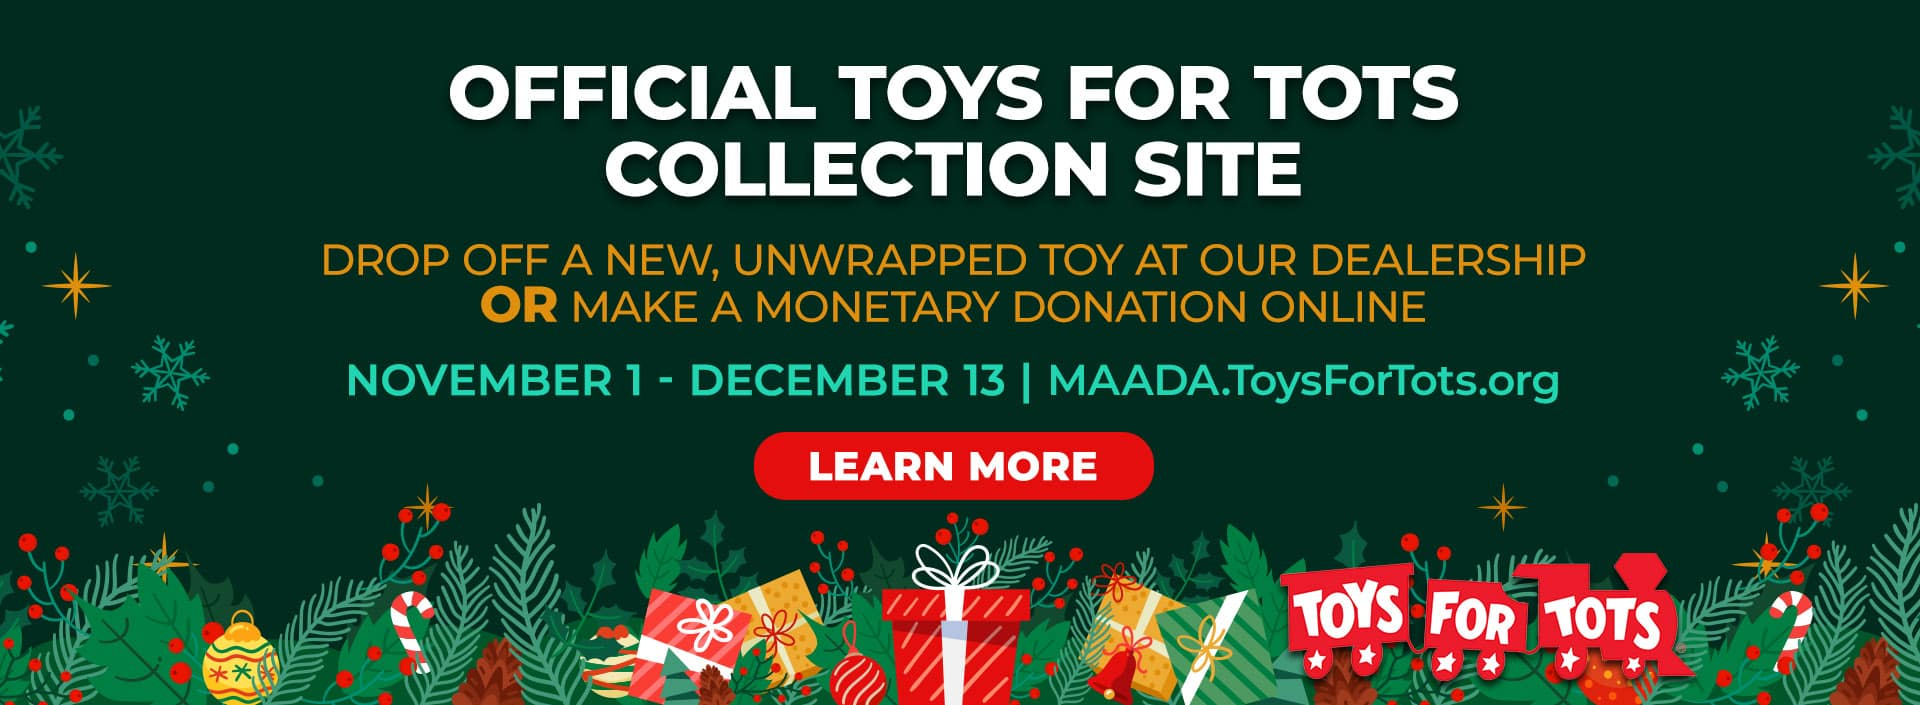 Toys for Tots Collection Site in Atlanta, GA